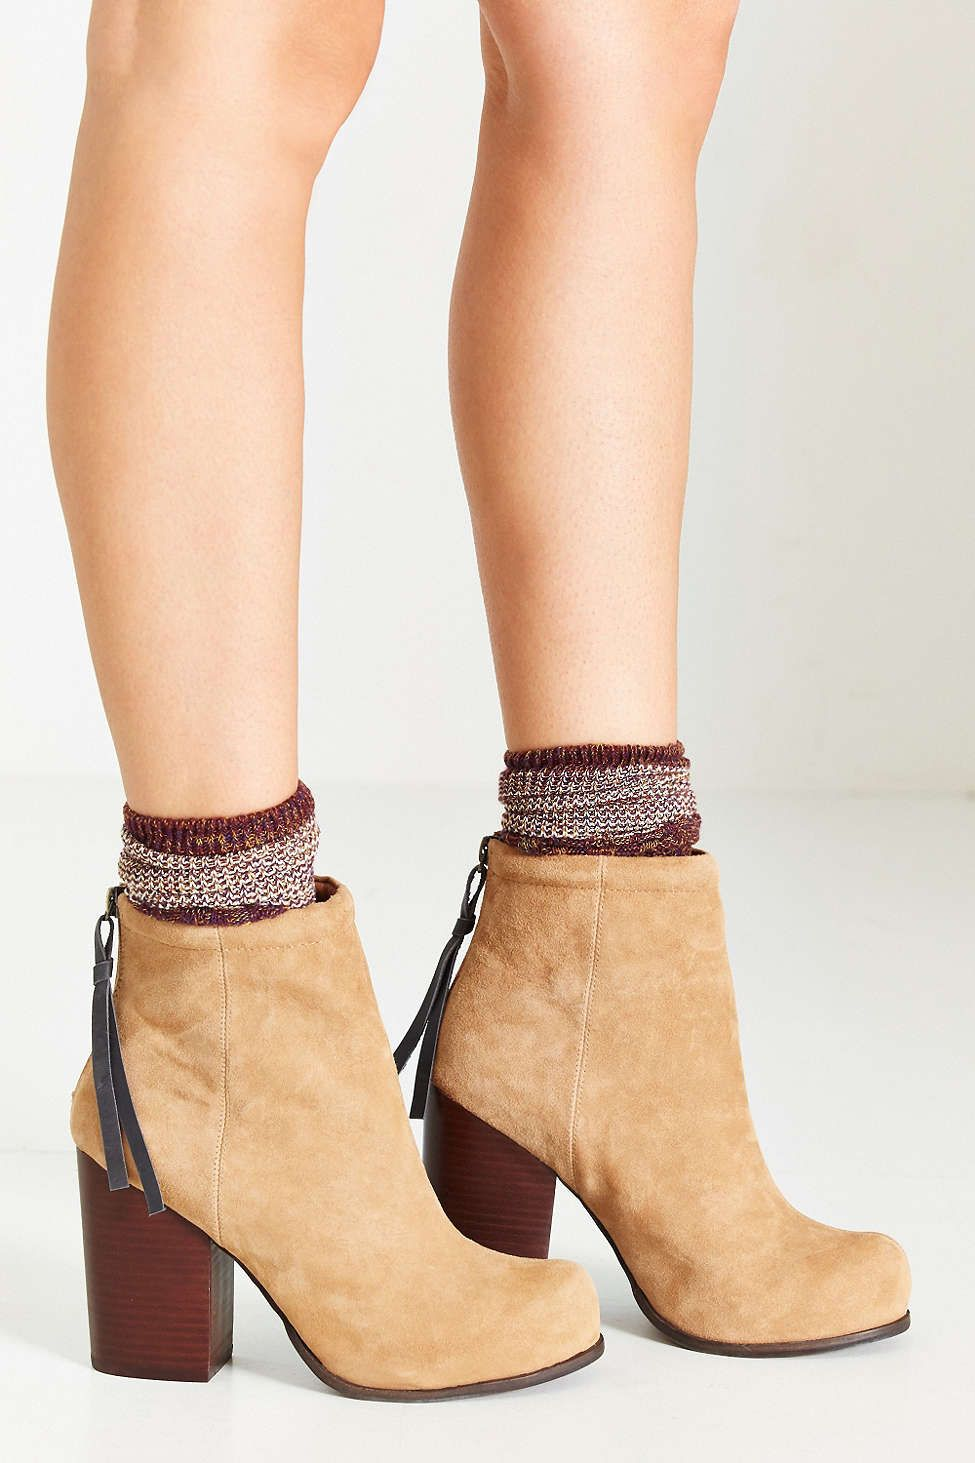 6fa87e647be87 Jeffrey Campbell Suede Rumble Boot - Urban Outfitters Pumped Up Kicks,  Suede Boots, Jeffrey